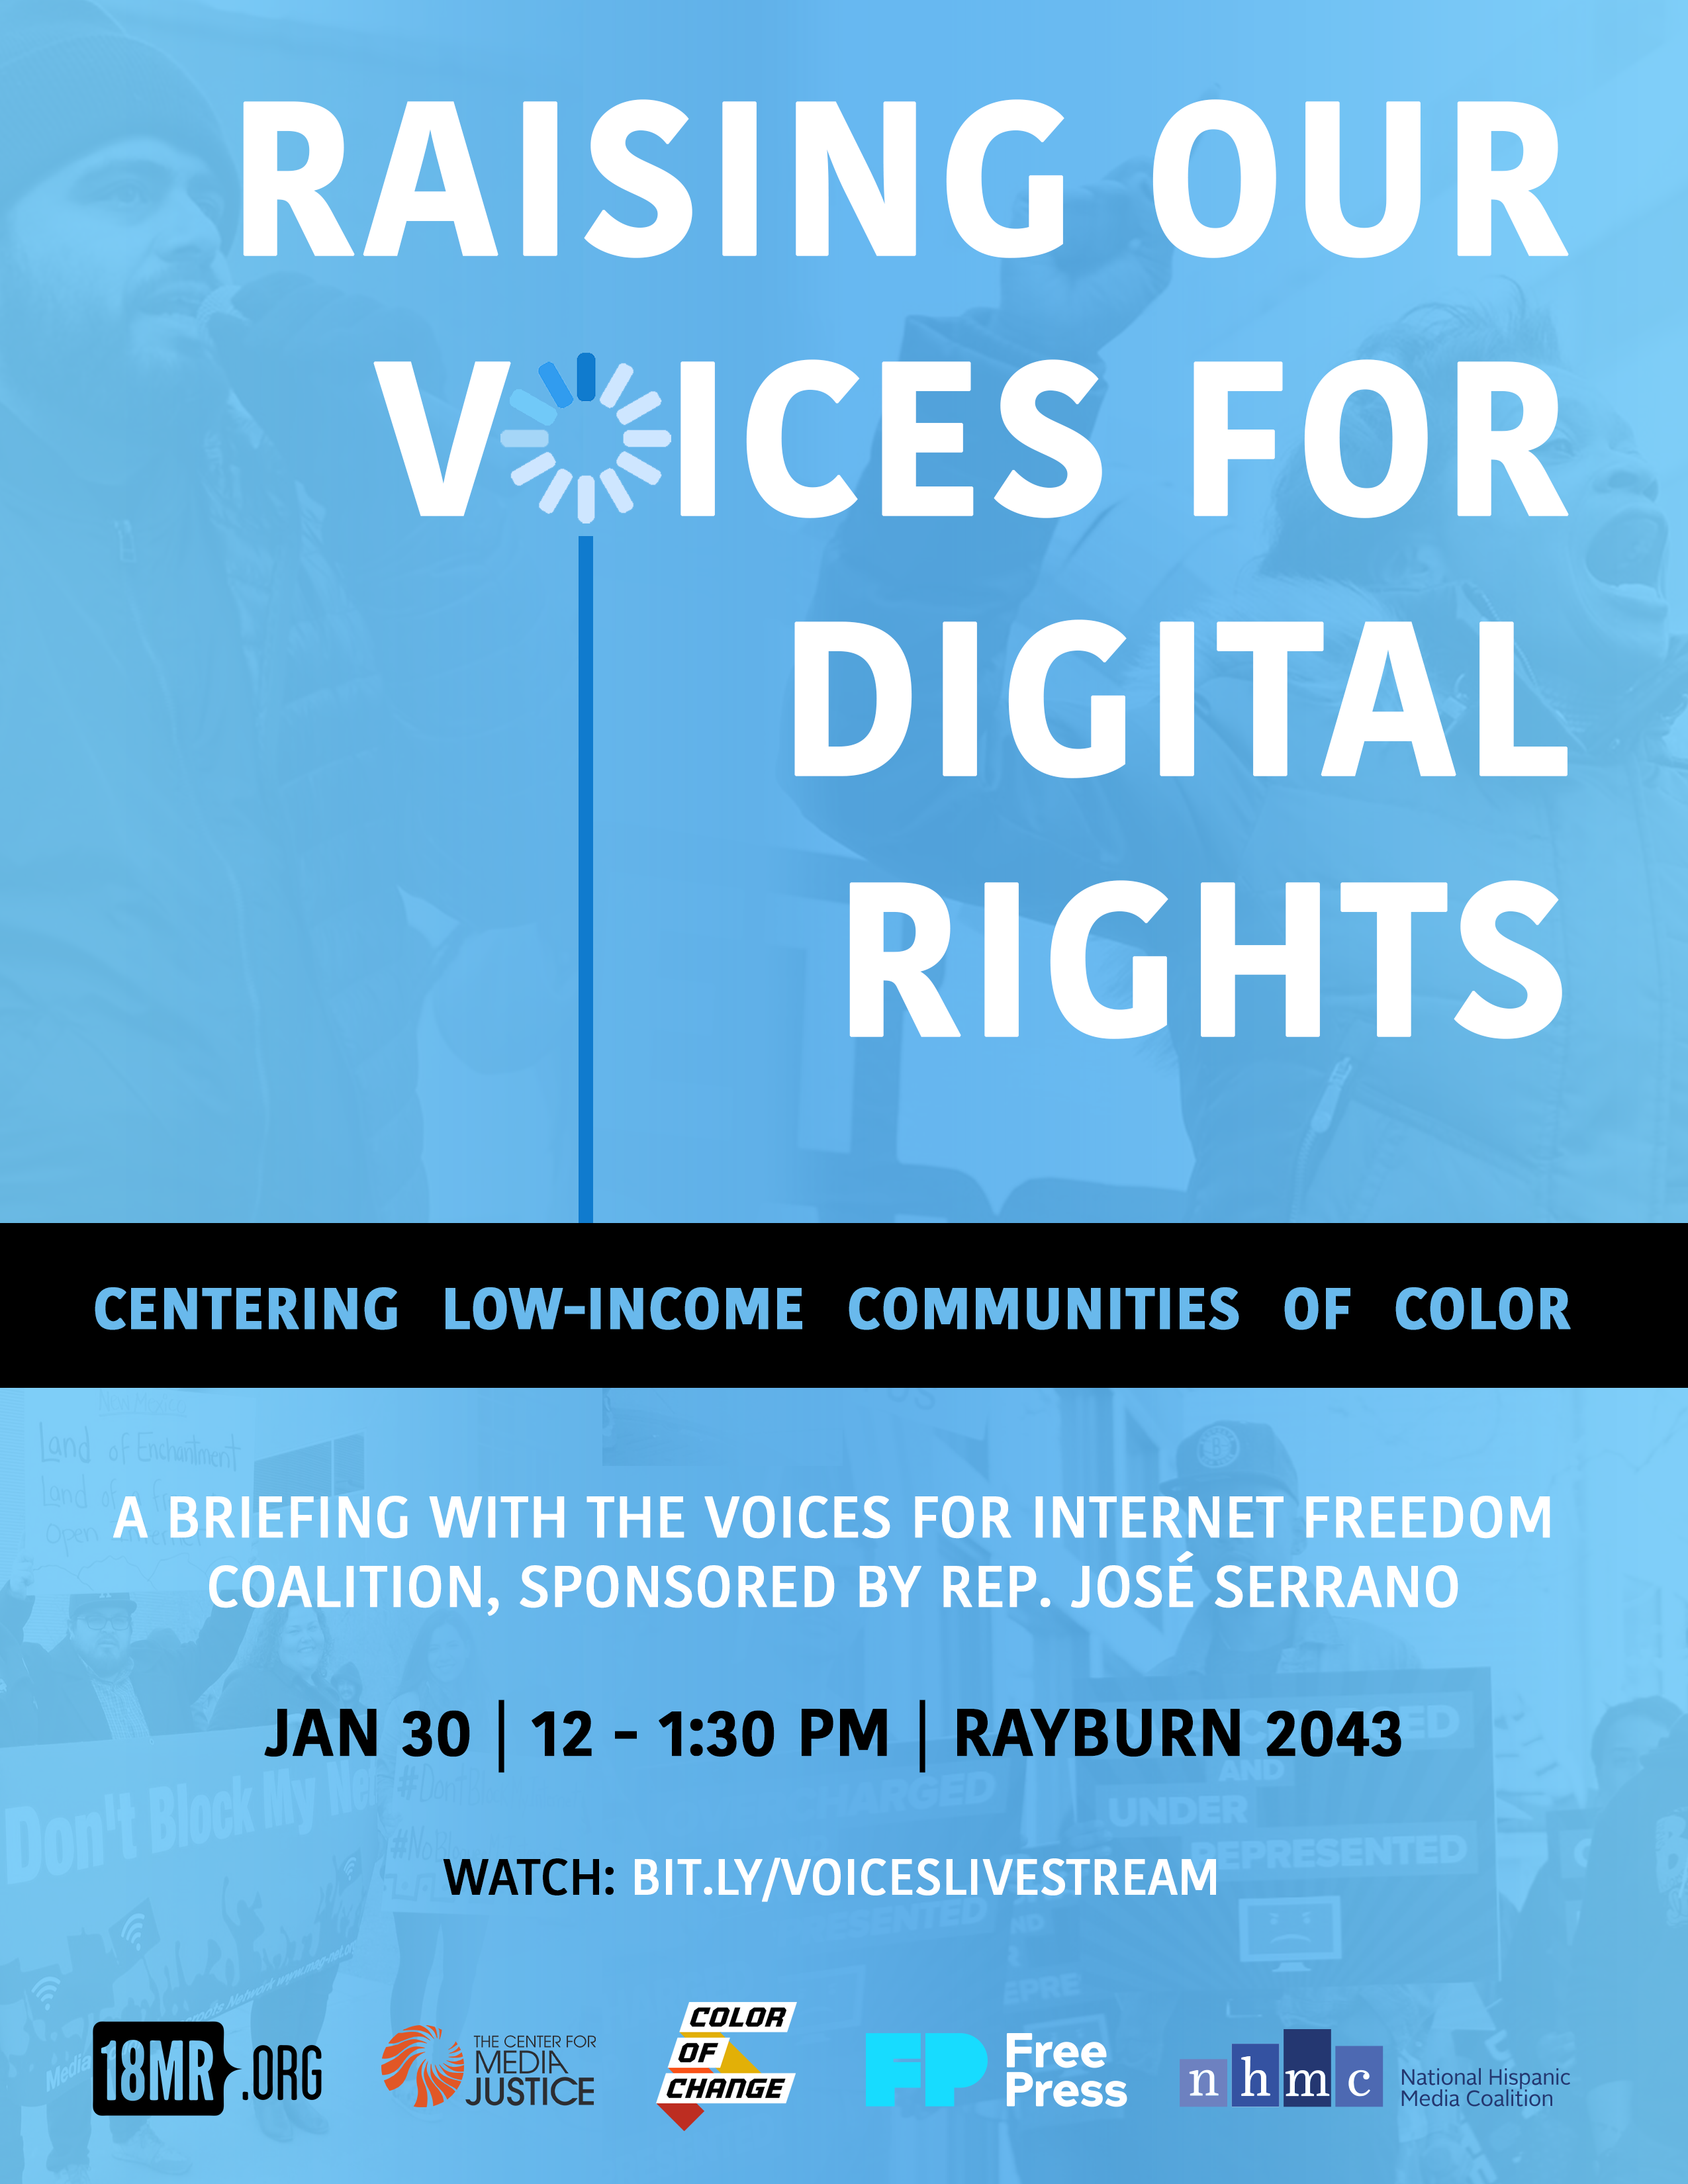 """Image: A flyer for """"Raising Our Voices for Digital Rights,"""" a briefing for new members of Congress on Jan 30th at 12 pm ET, in Washington D.C. Watch the livestream: bit.ly/voiceslivestream. Hosted by Voices for Internet Freedom Coalition."""